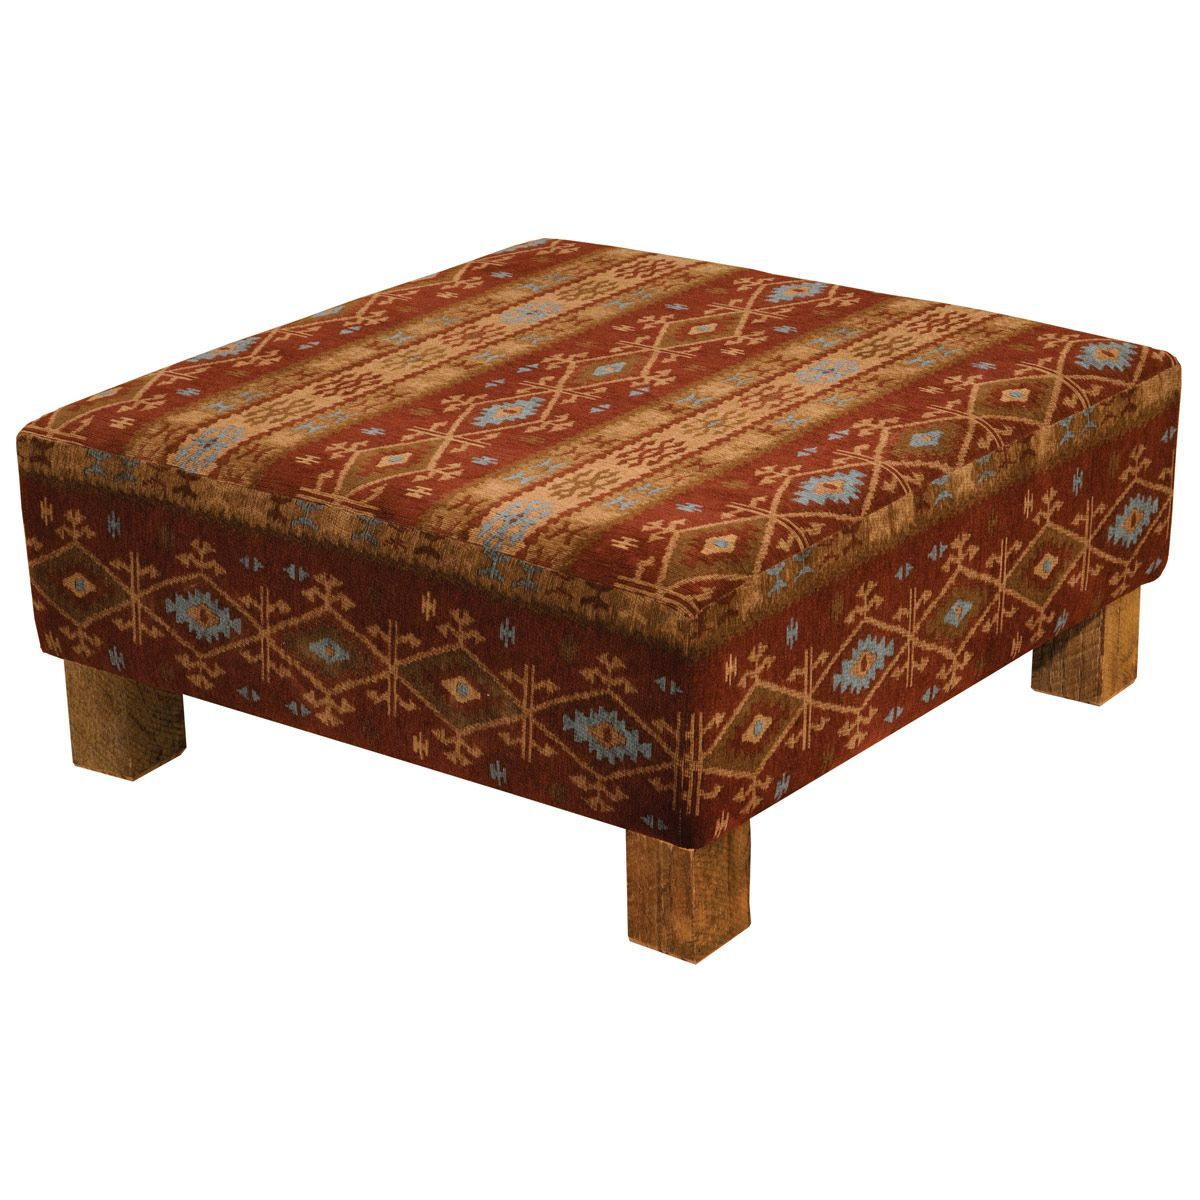 Mountain Sierra Coffee Table Ottoman with Barnwood Legs